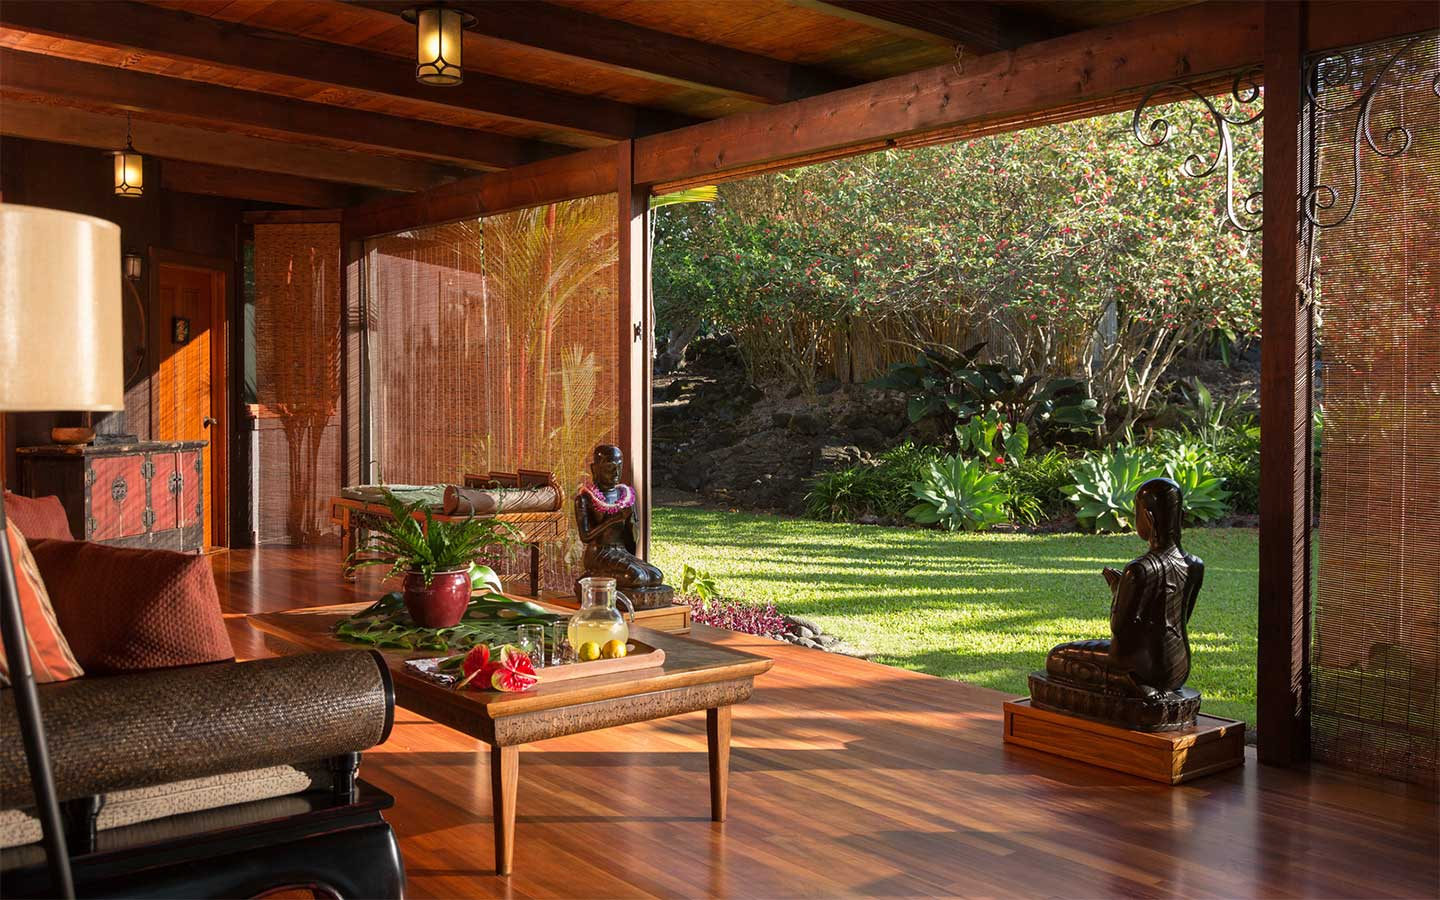 Hawaii Interior Designer: Holualoa Inn Photo Gallery